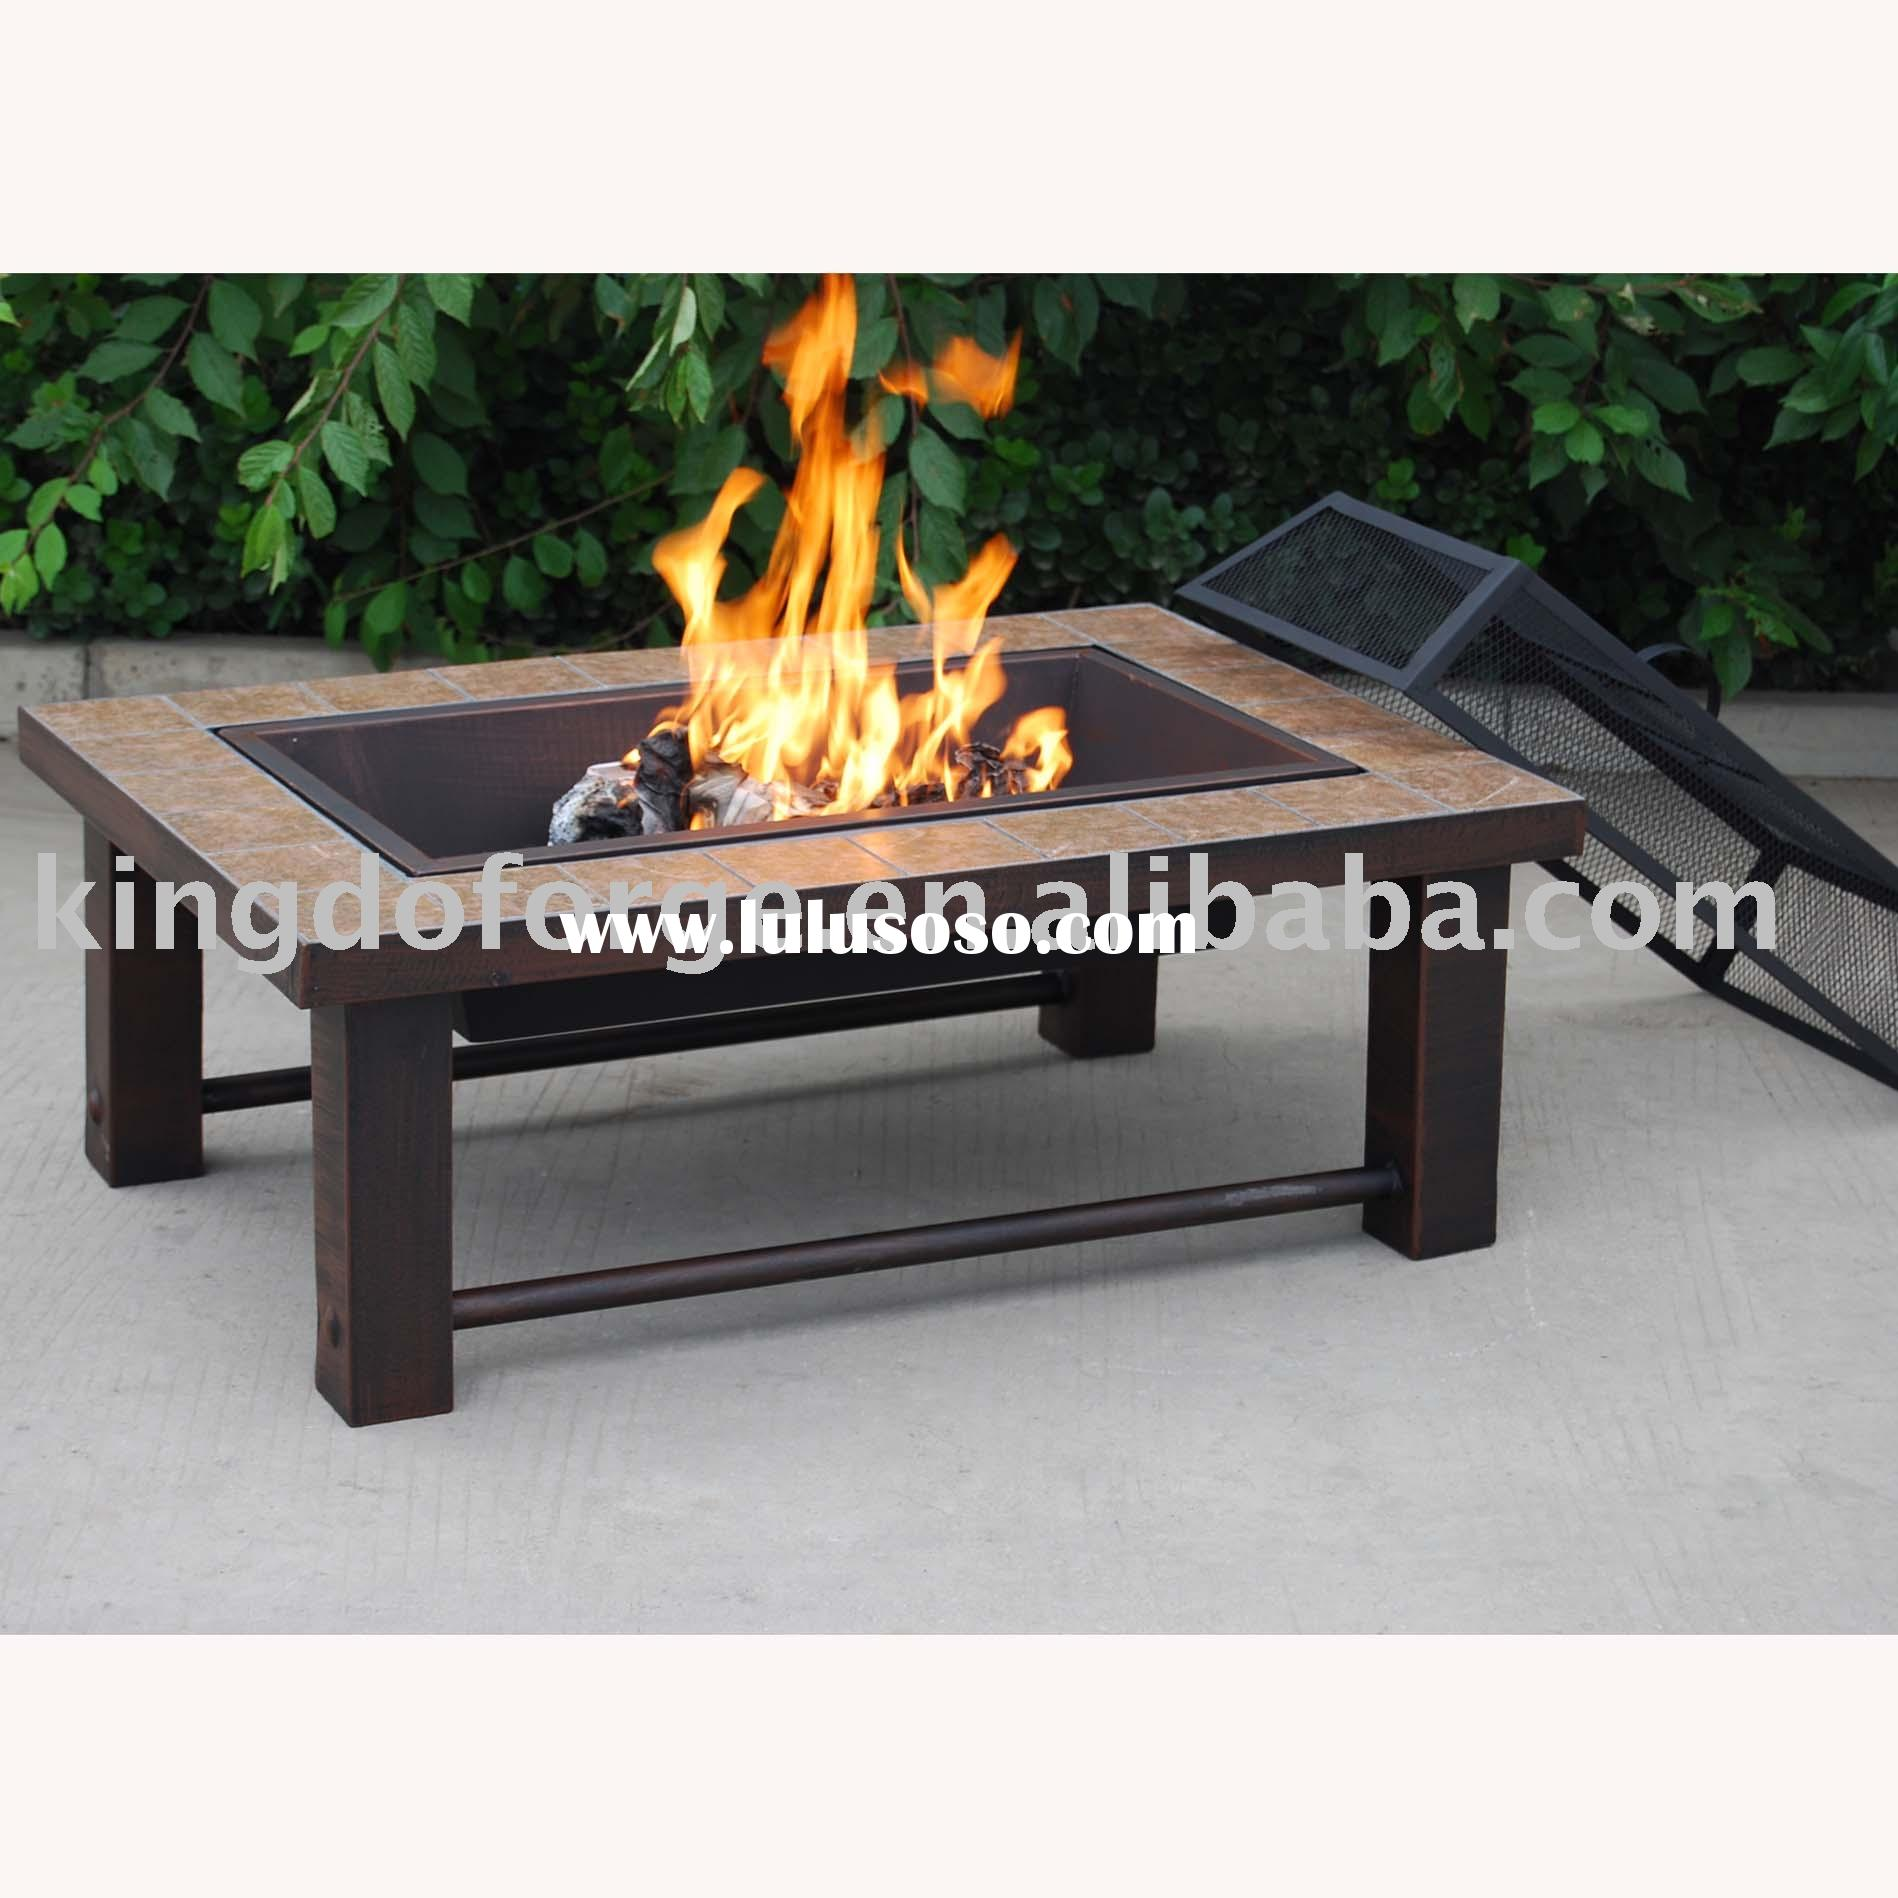 tabletop fire pit best giallo santo granite octagon fire pit